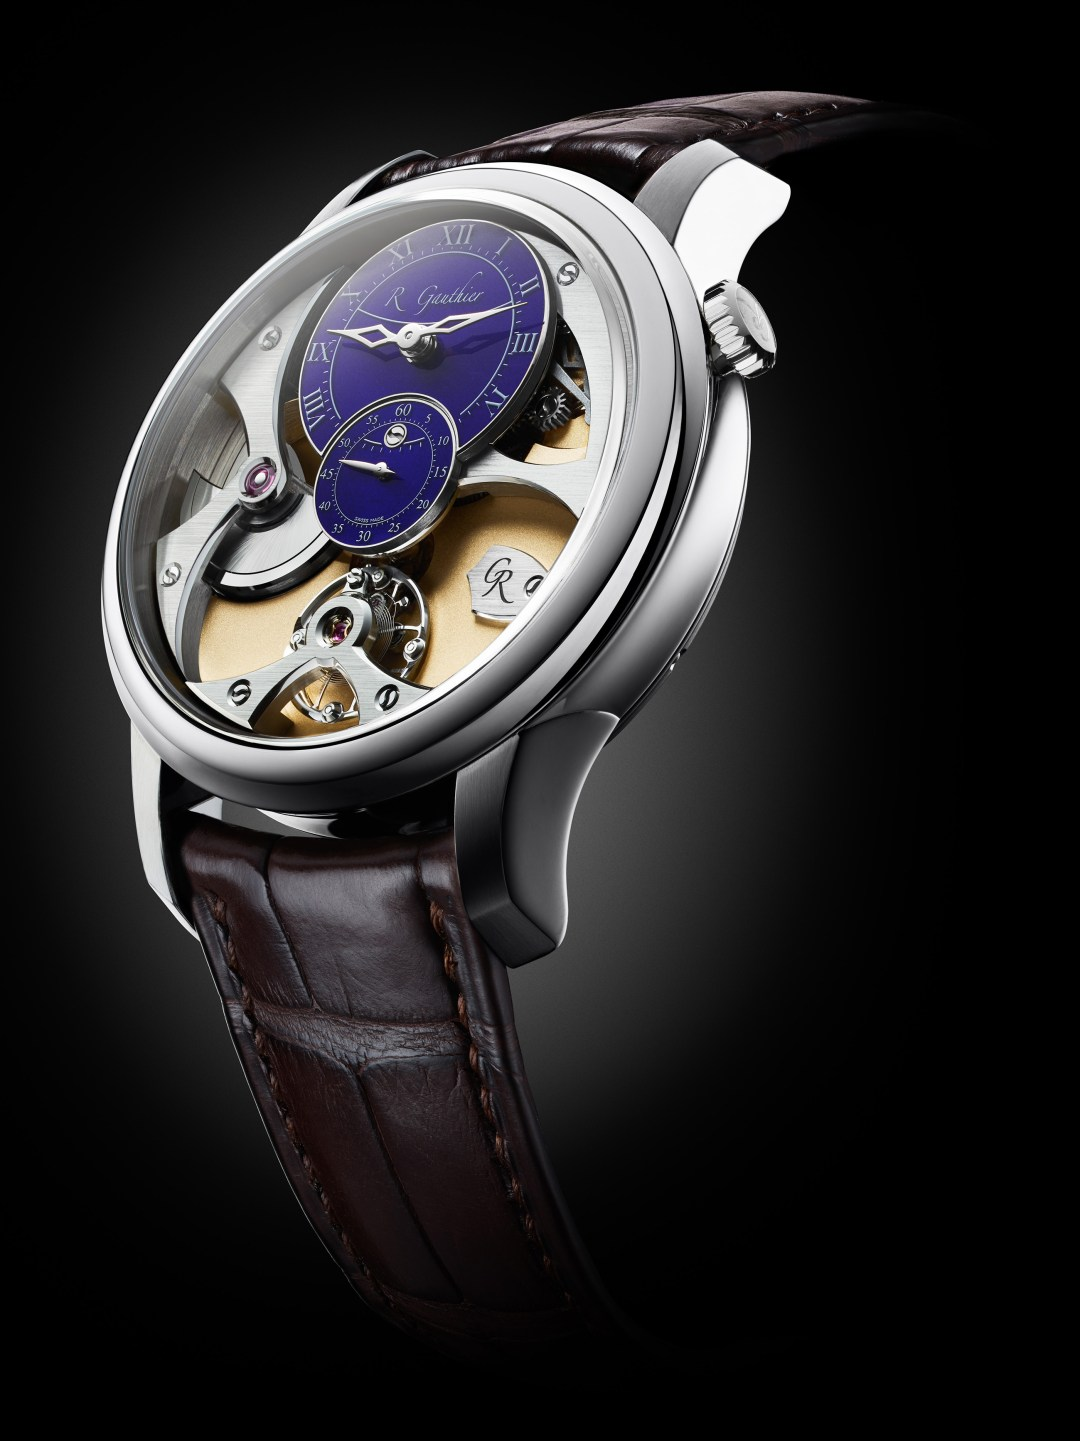 Romain_Gauthier_Insight_Micro-Rotor_white_gold_blue_enamel_dial_2